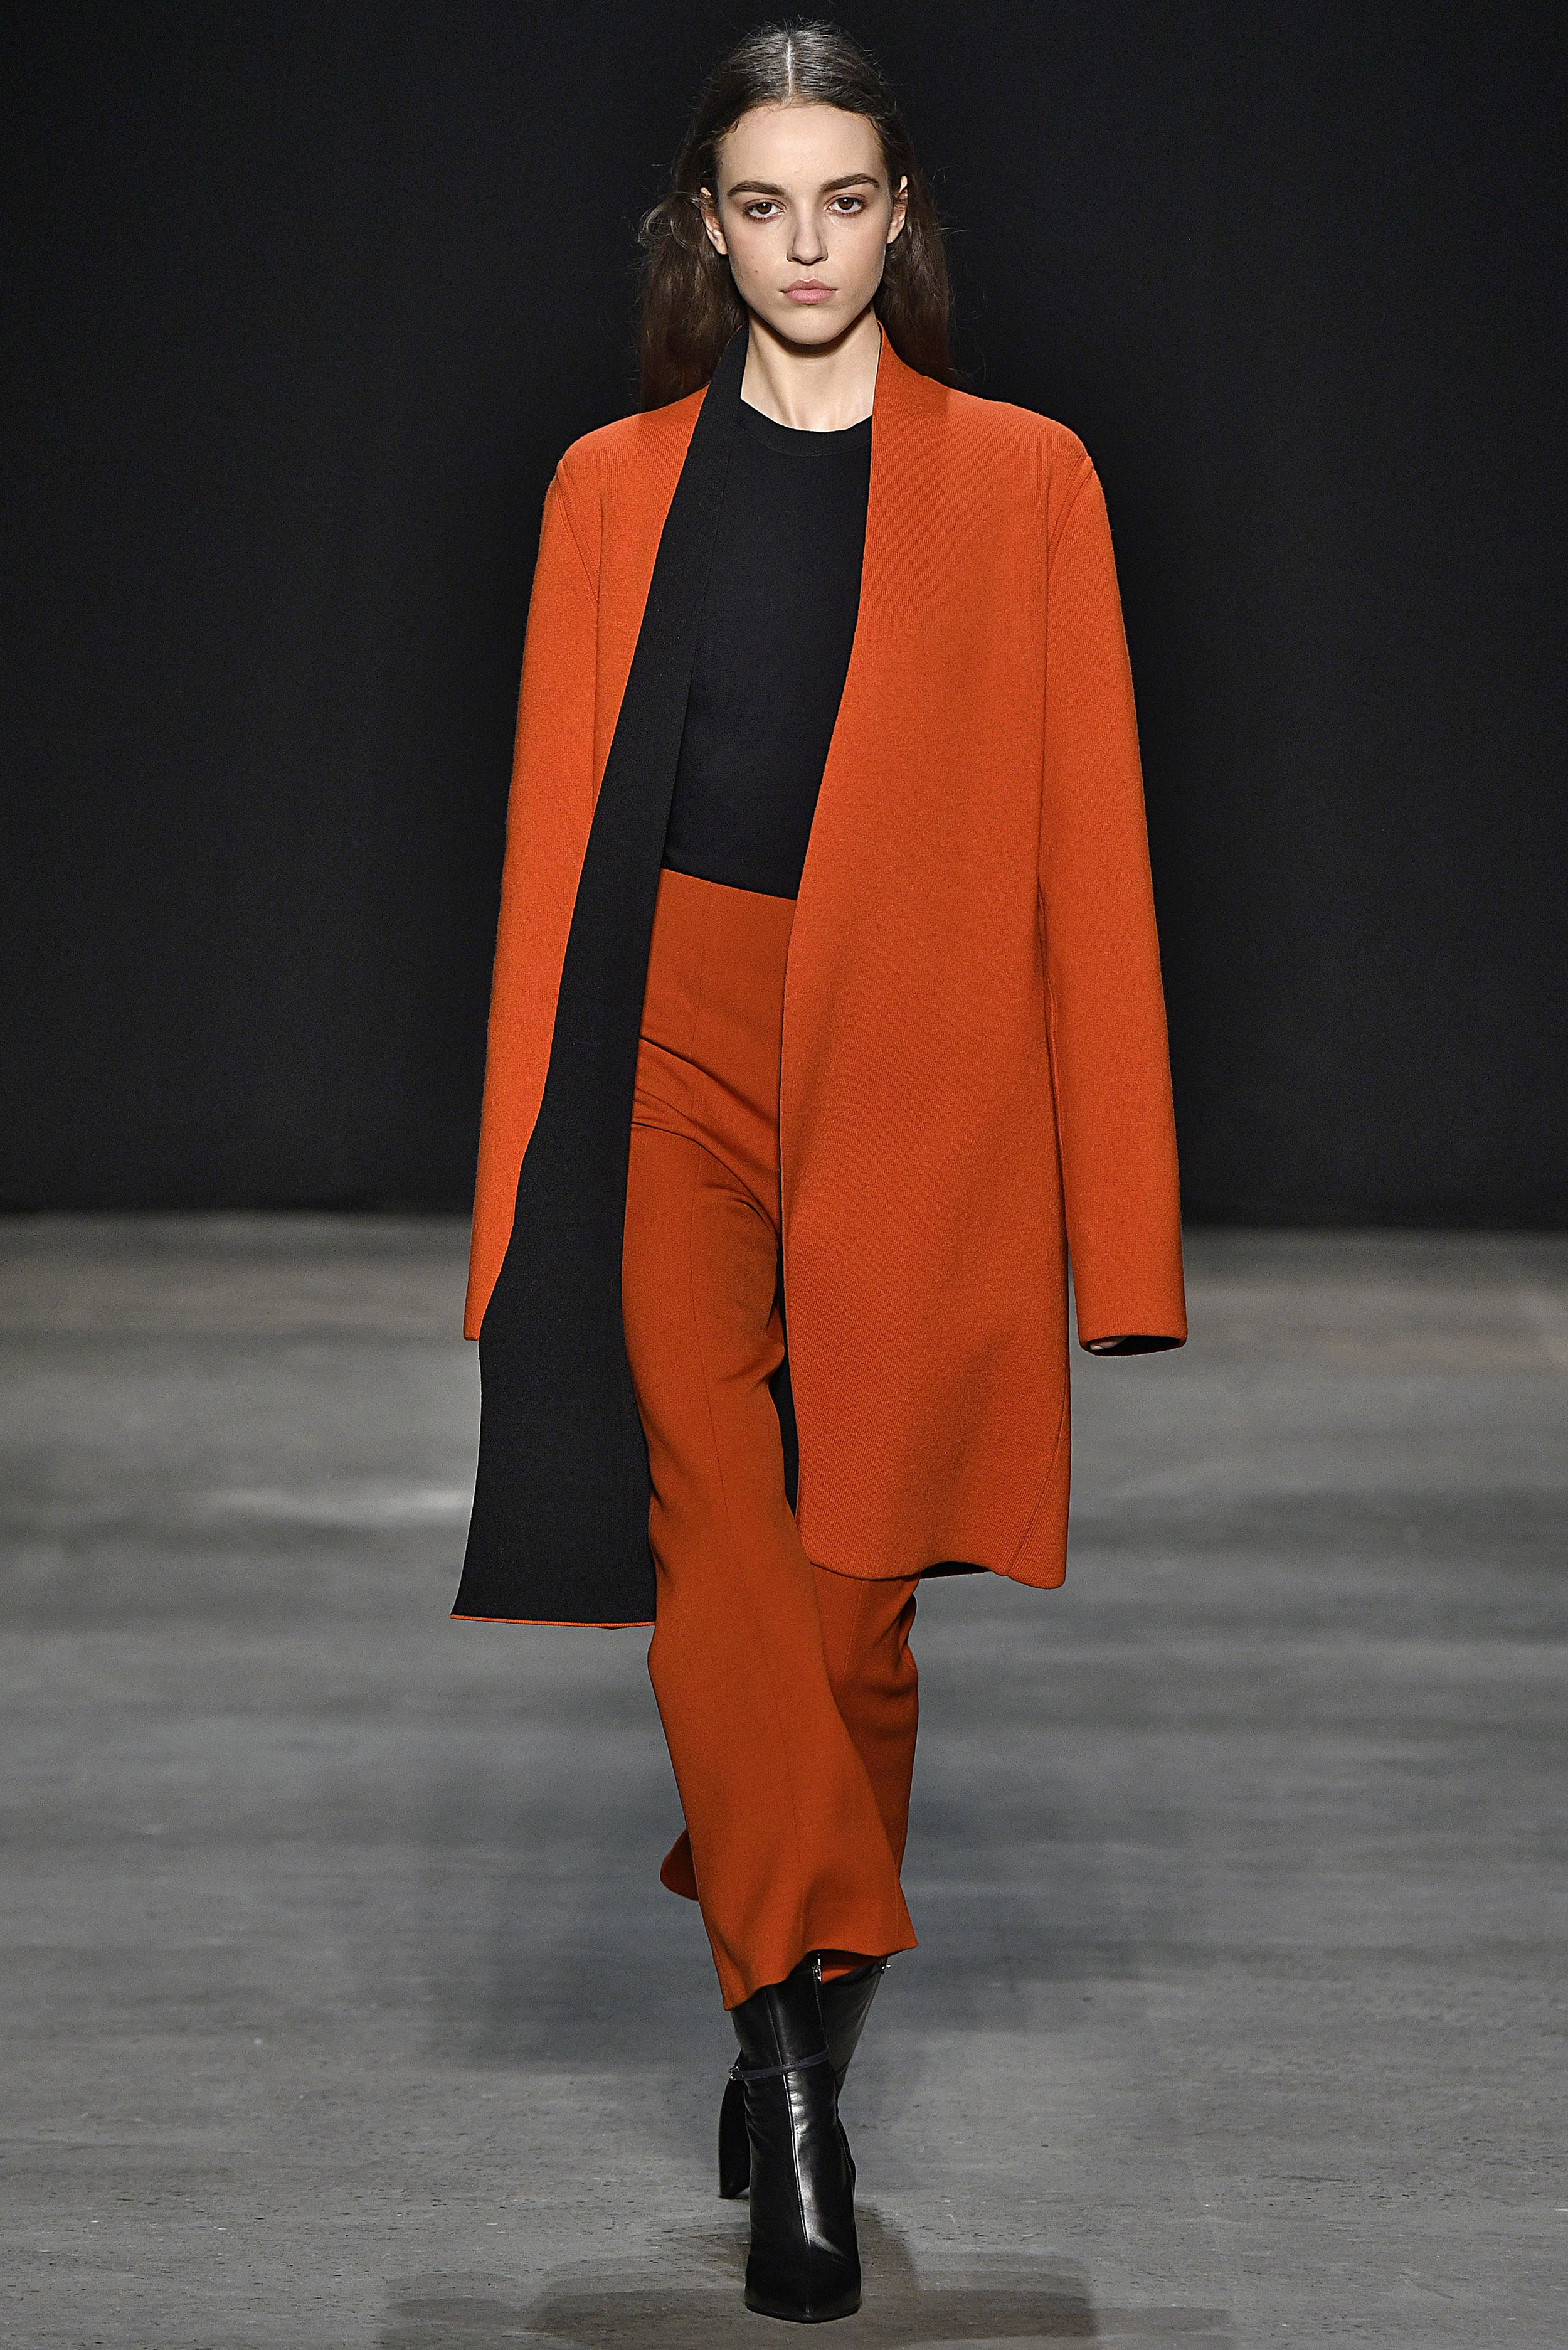 Narciso Rodriguez Fall 2017 collection. Red cashmere/black double knit coat over black double knit top with crimson wool barathea pant.